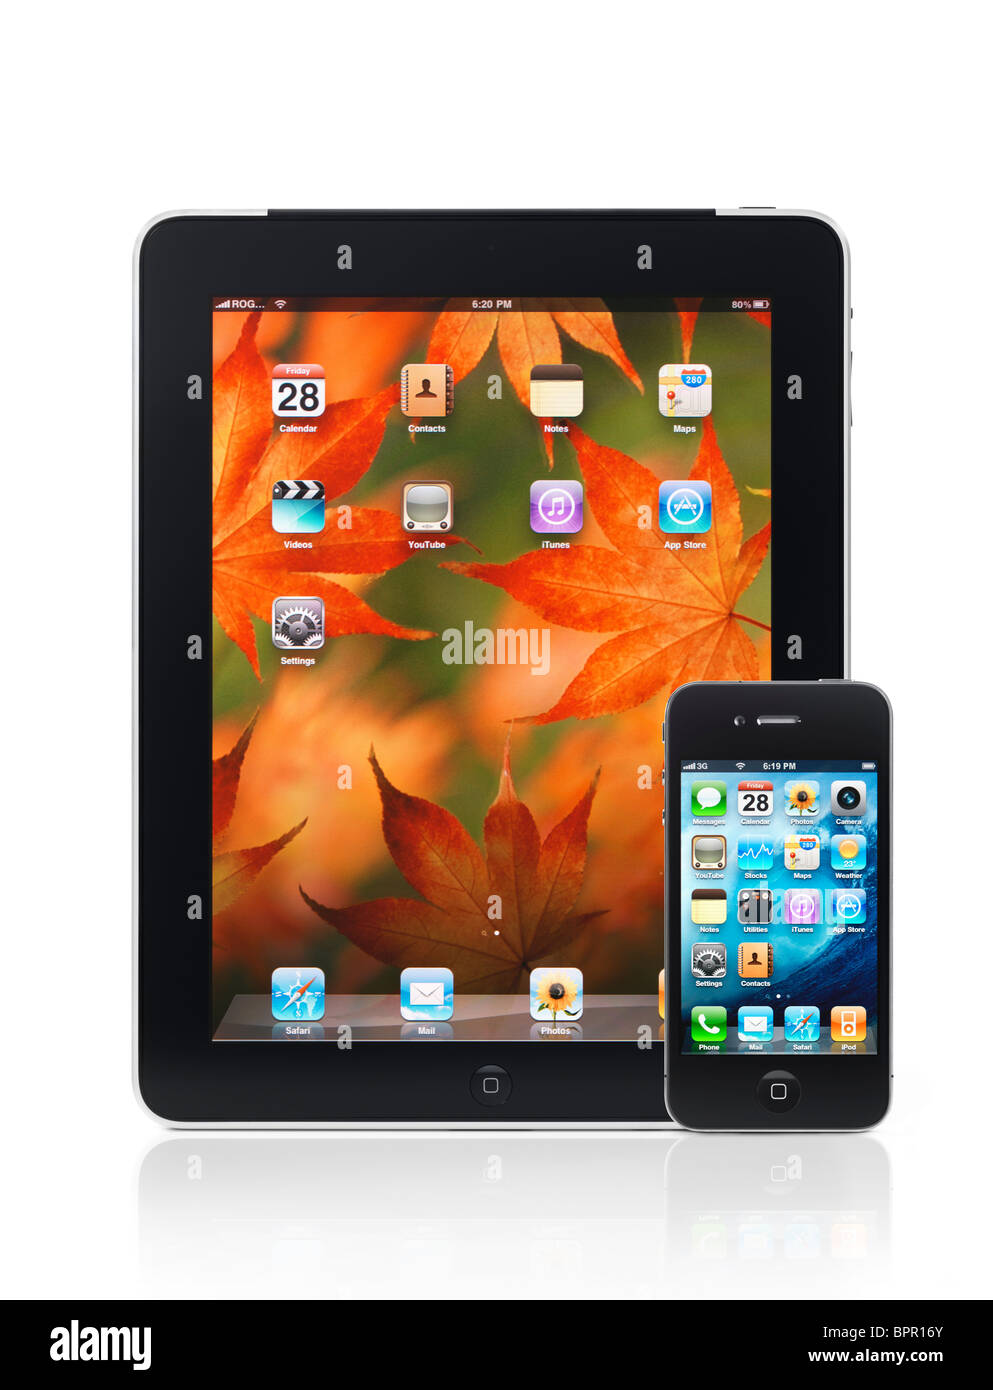 Apple iPad 3G tablet computer and iPhone 4 smartphone with desktop icons on their displays isolated on white background. - Stock Image